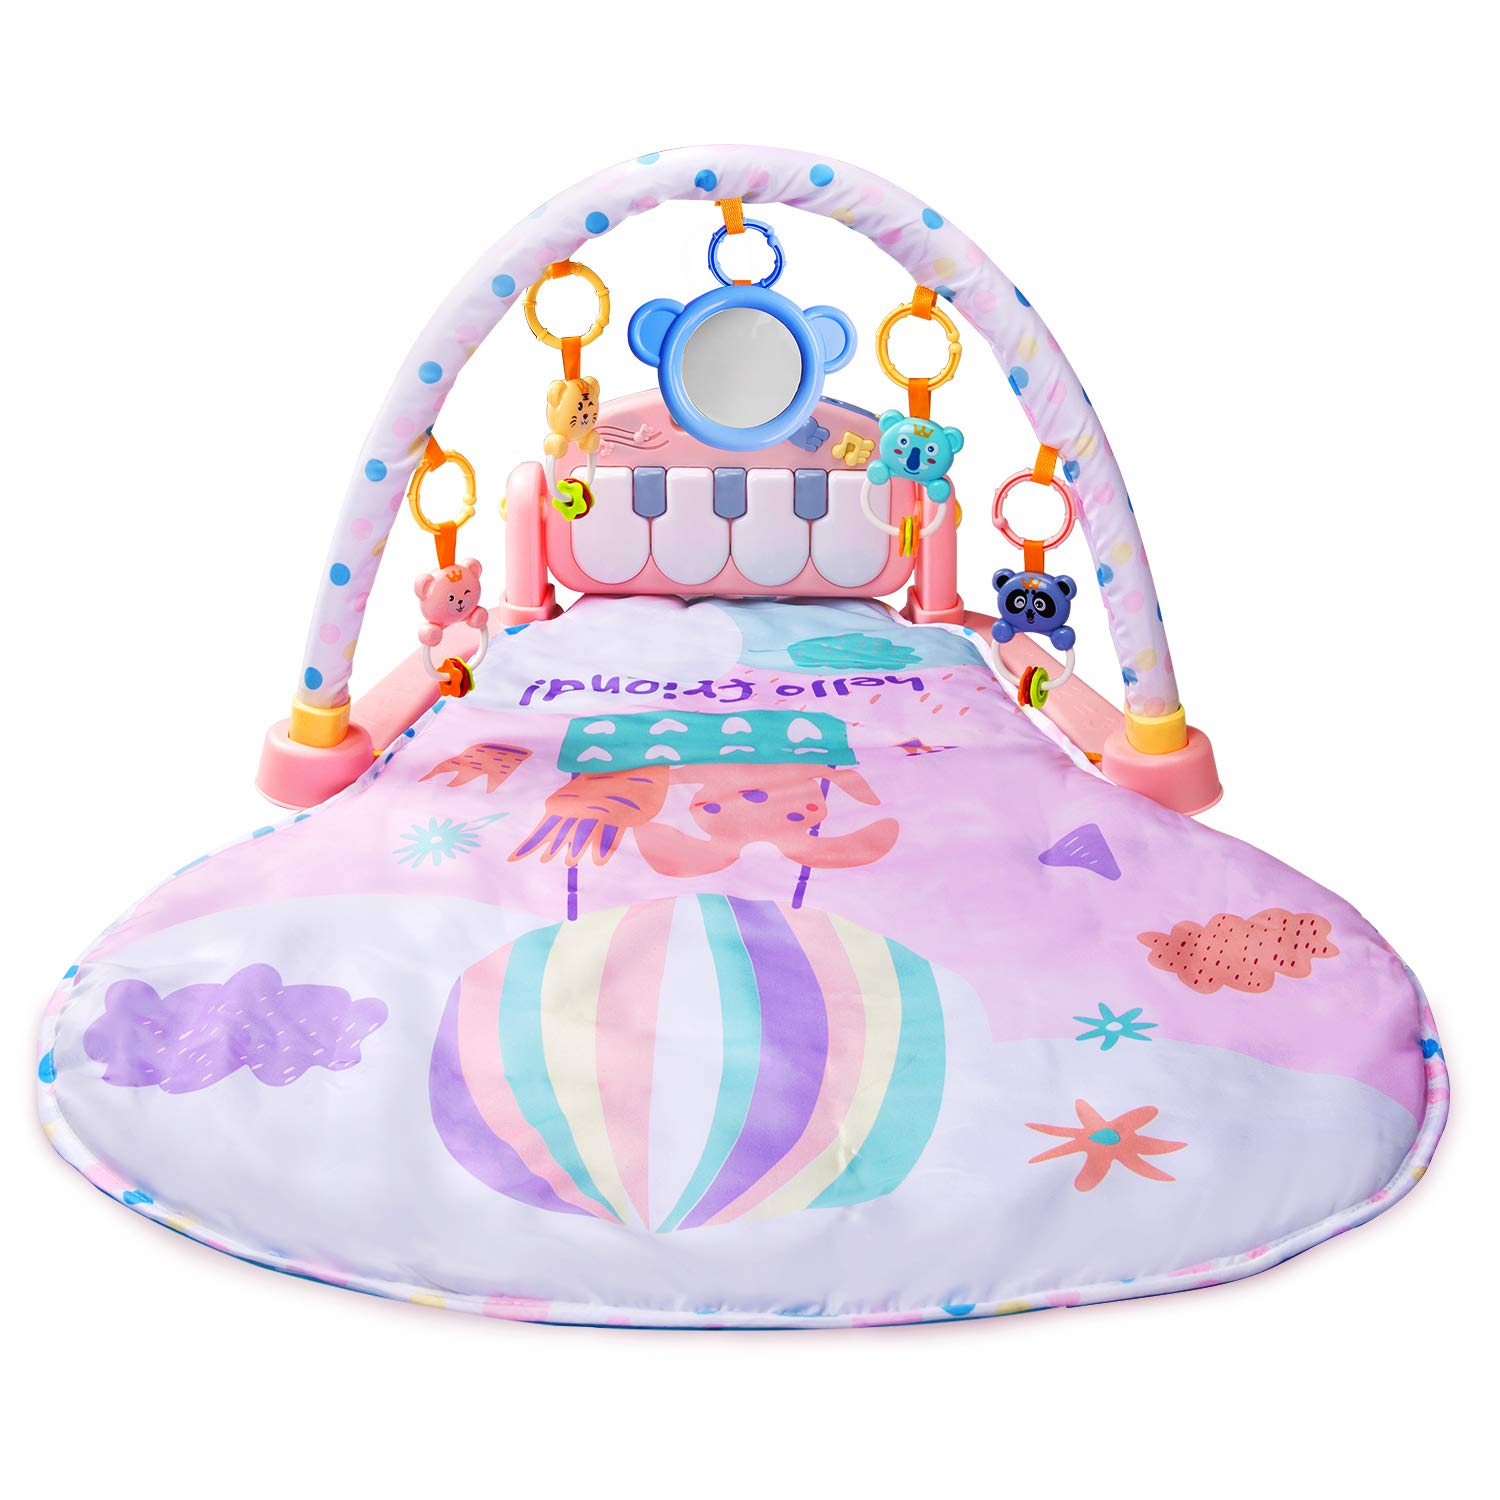 Large Baby Play Mat BATTOP Kick and Play Piano Gym – 5 Toys and Musical Activity Baby Gym for 0-36 Month Boys and Girls Pink